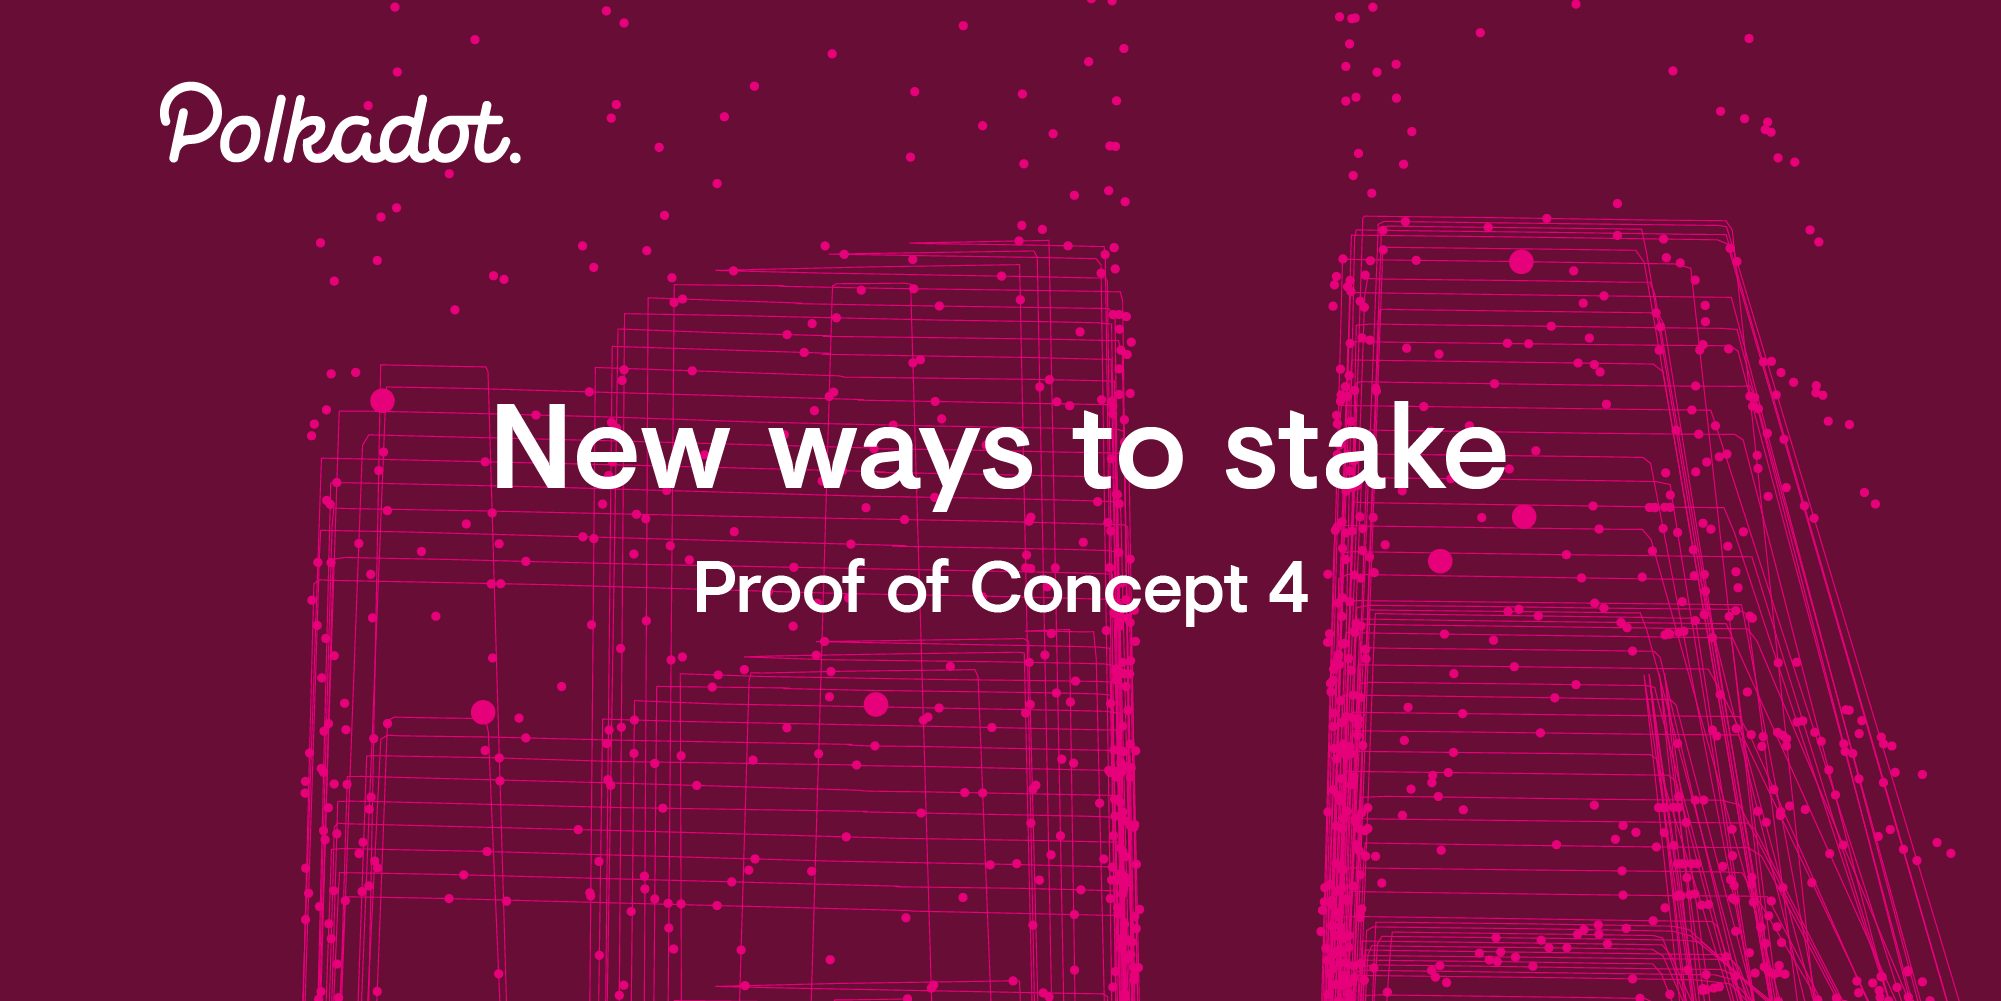 Polkadot Proof of Concept 4 arrives with new ways to stake